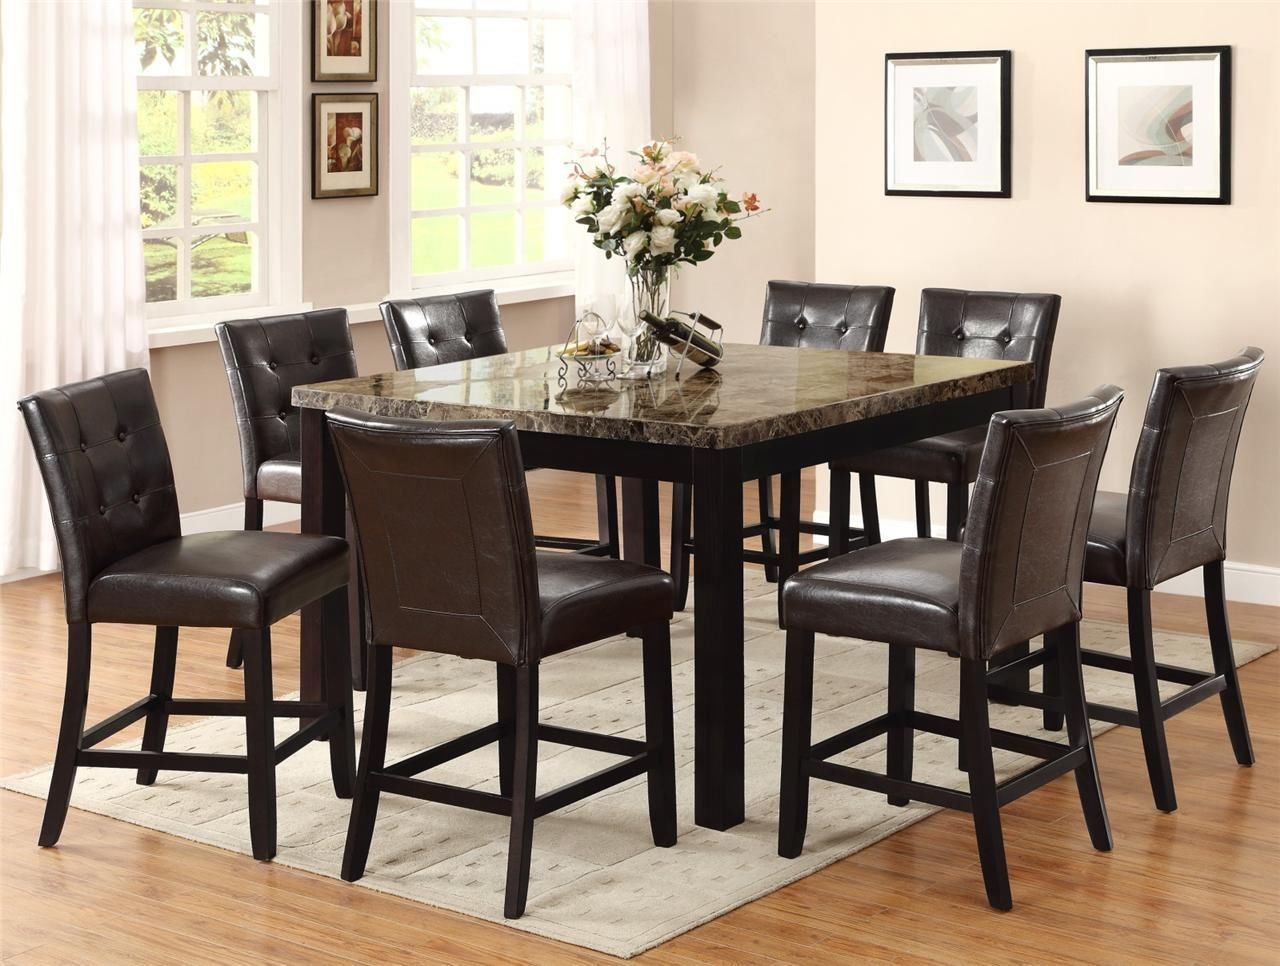 Marble Top Round Dining Table Set  Httplachpage Prepossessing 8 Pc Dining Room Set Decorating Design